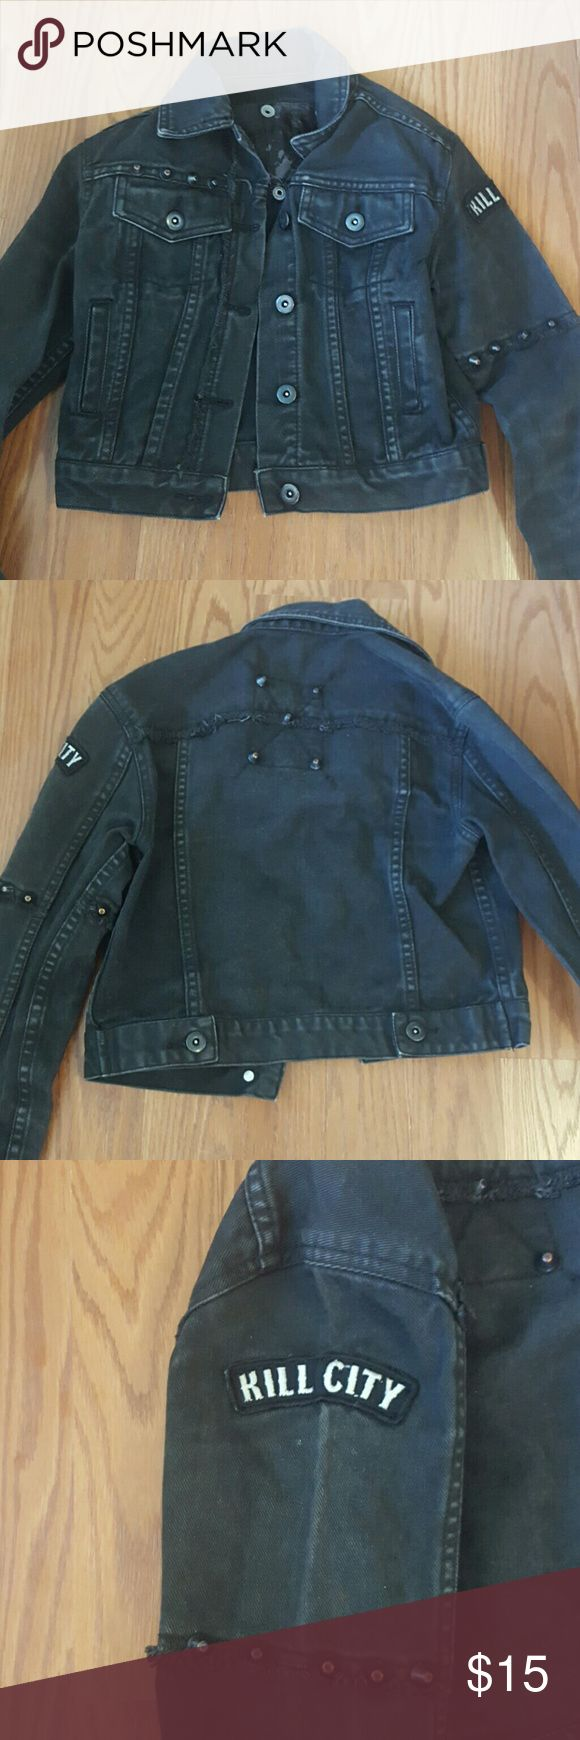 Lip service kill city black/gray jean jacket NWOT excellent condition. Worn once. Hasnt been broken in yet. The color is a faded black style. lip service Jackets & Coats Jean Jackets